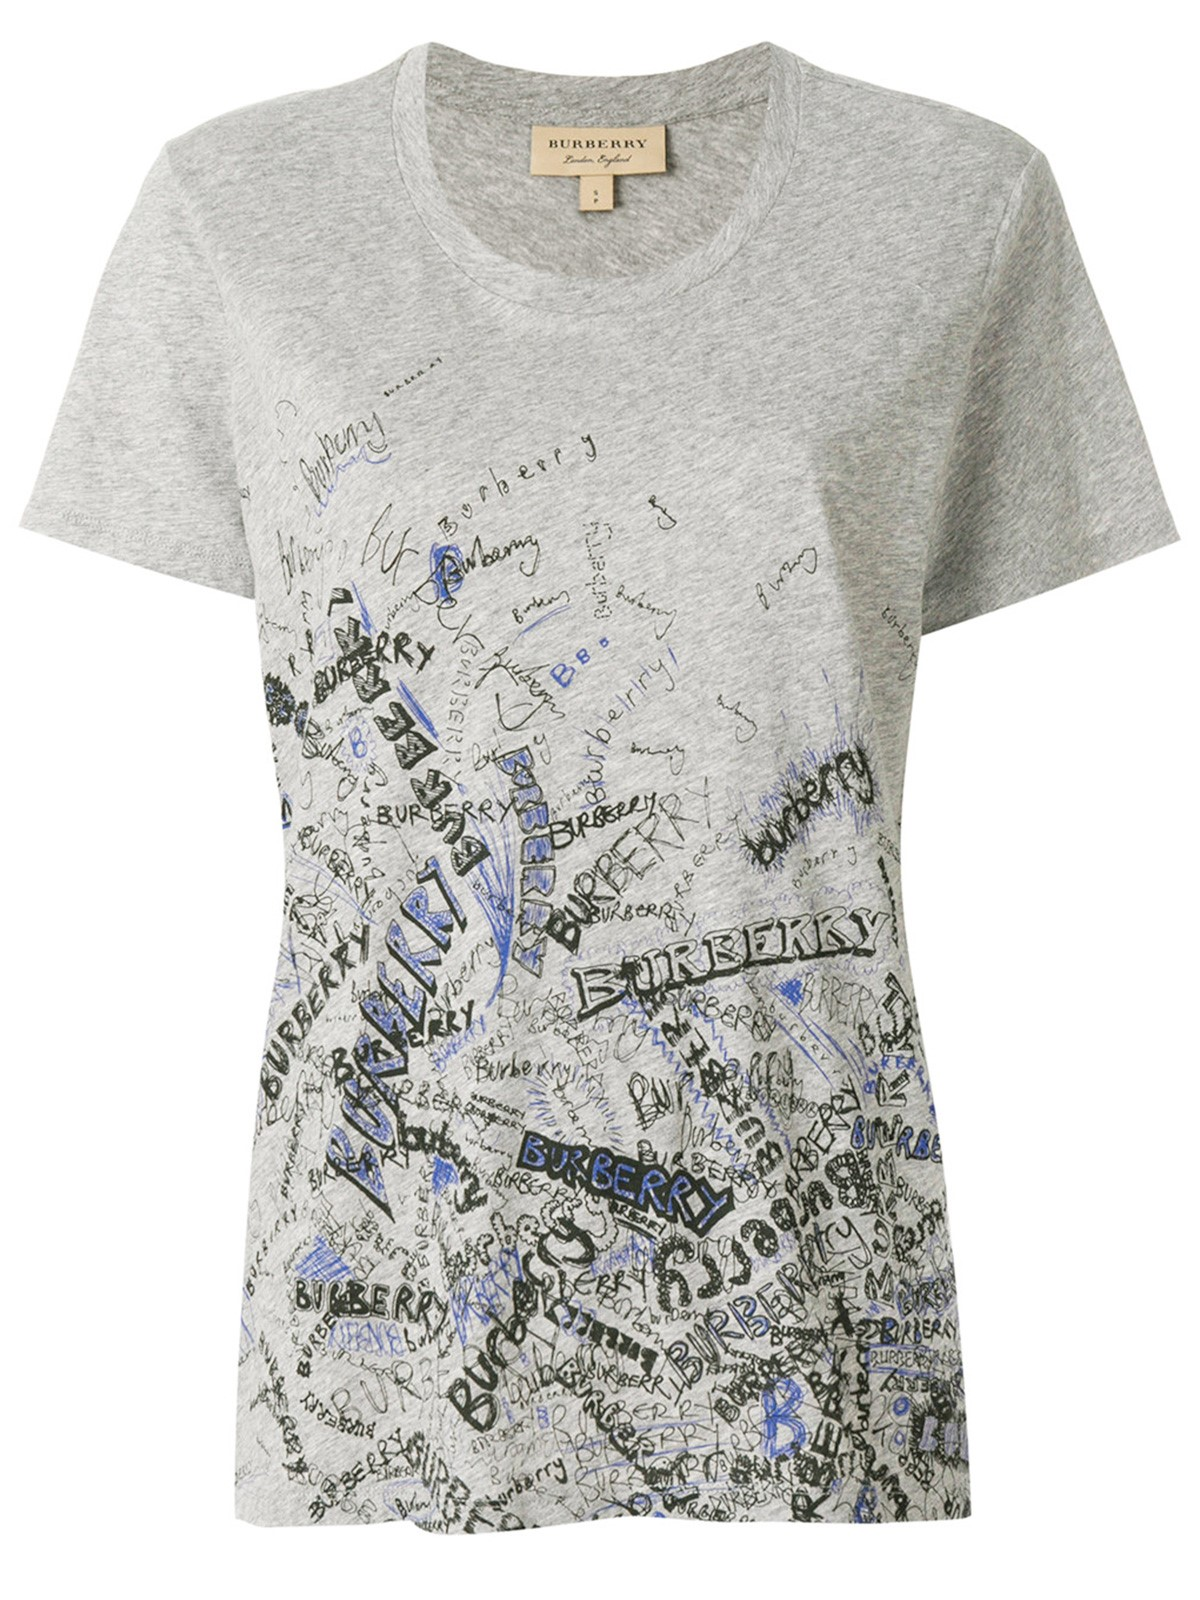 The Cheapest Cheap Wholesale Burberry doodle print T-shirt Sale Limited Edition Cheap Sale Wide Range Of Limited vj3Ua0